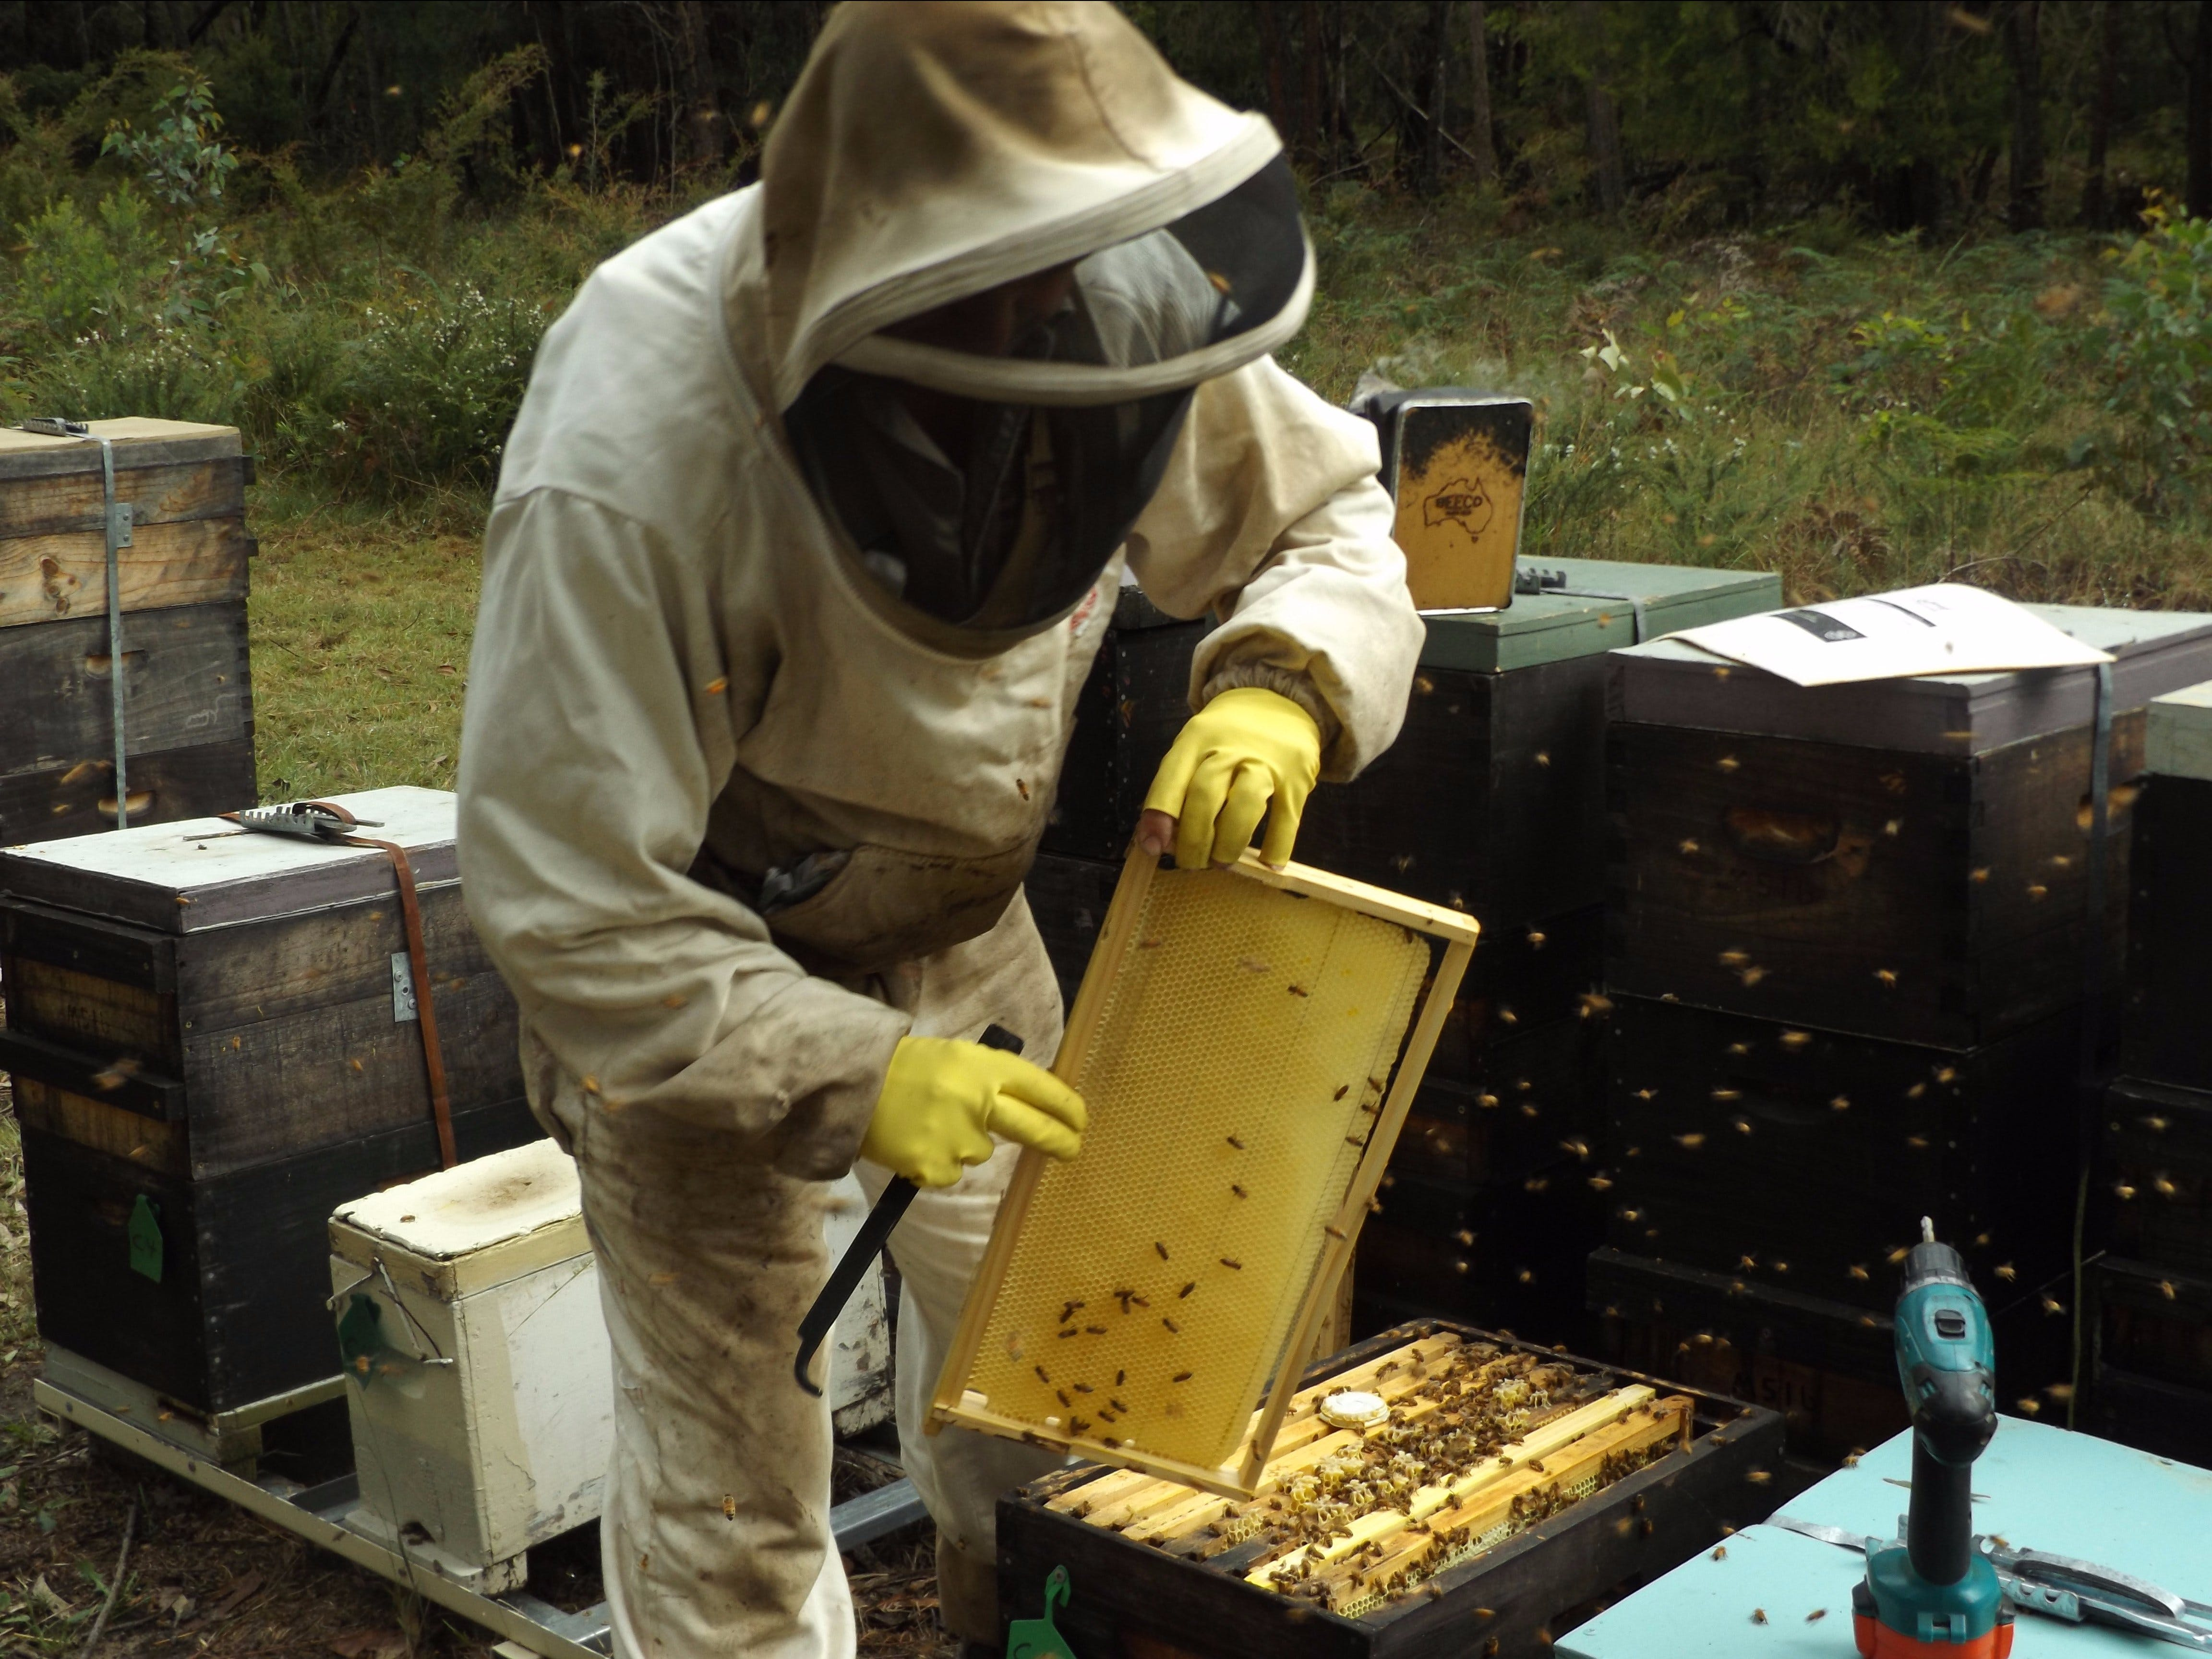 Working with the bees